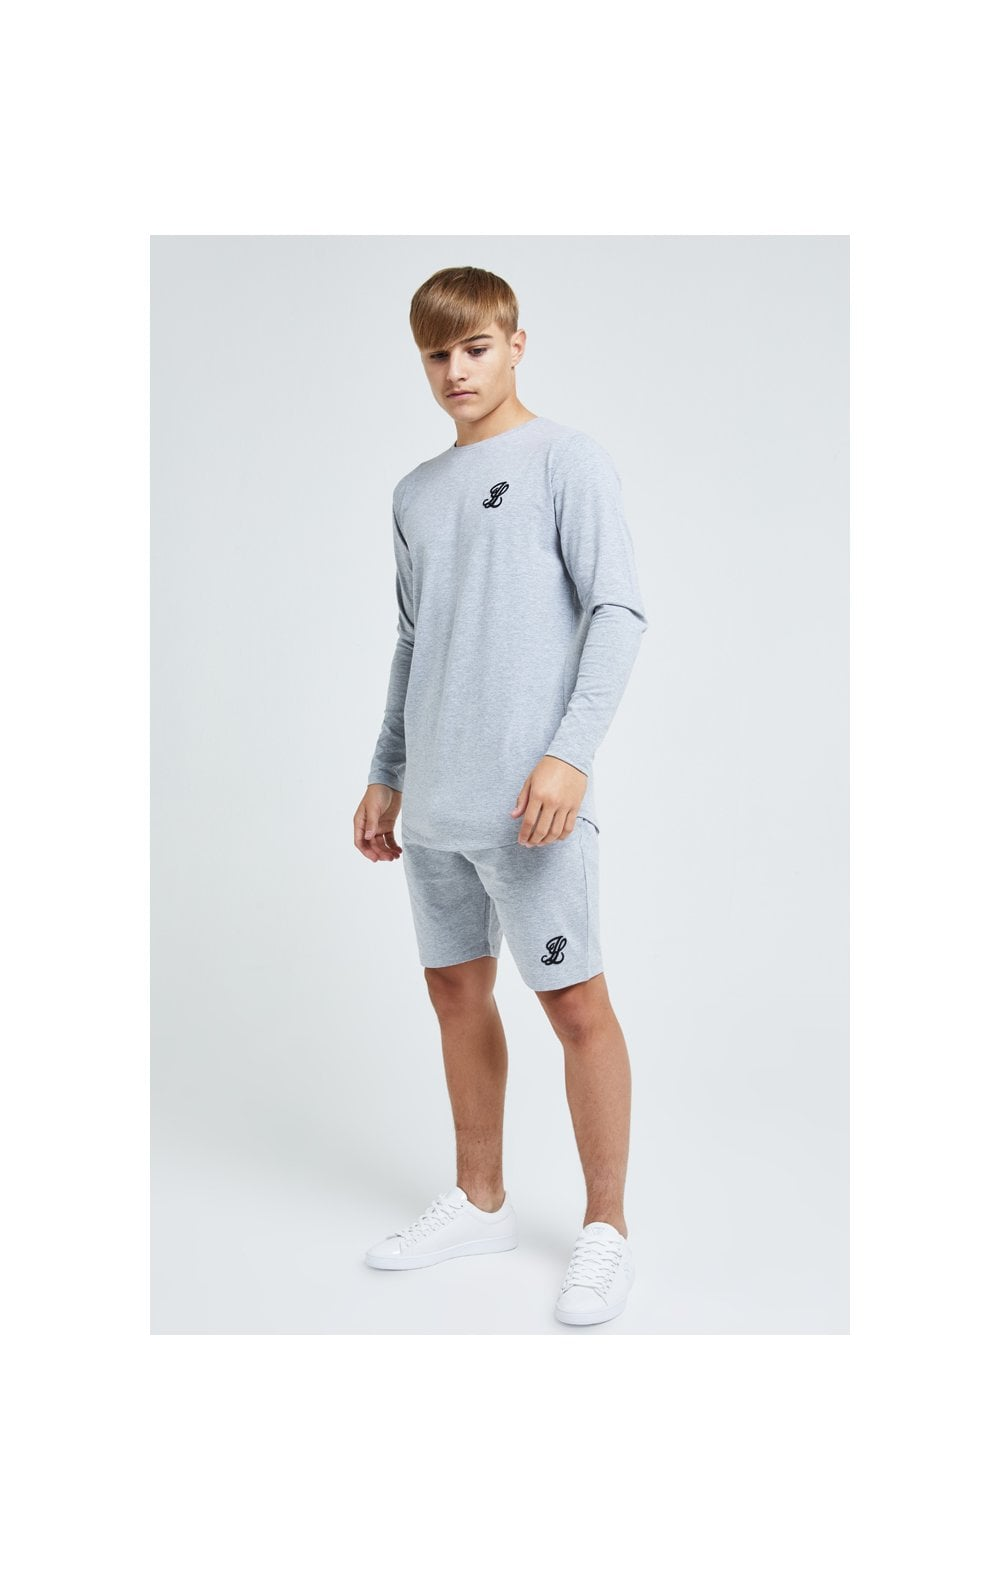 Load image into Gallery viewer, Illusive London L/S Core Tee - Grey Marl (3)